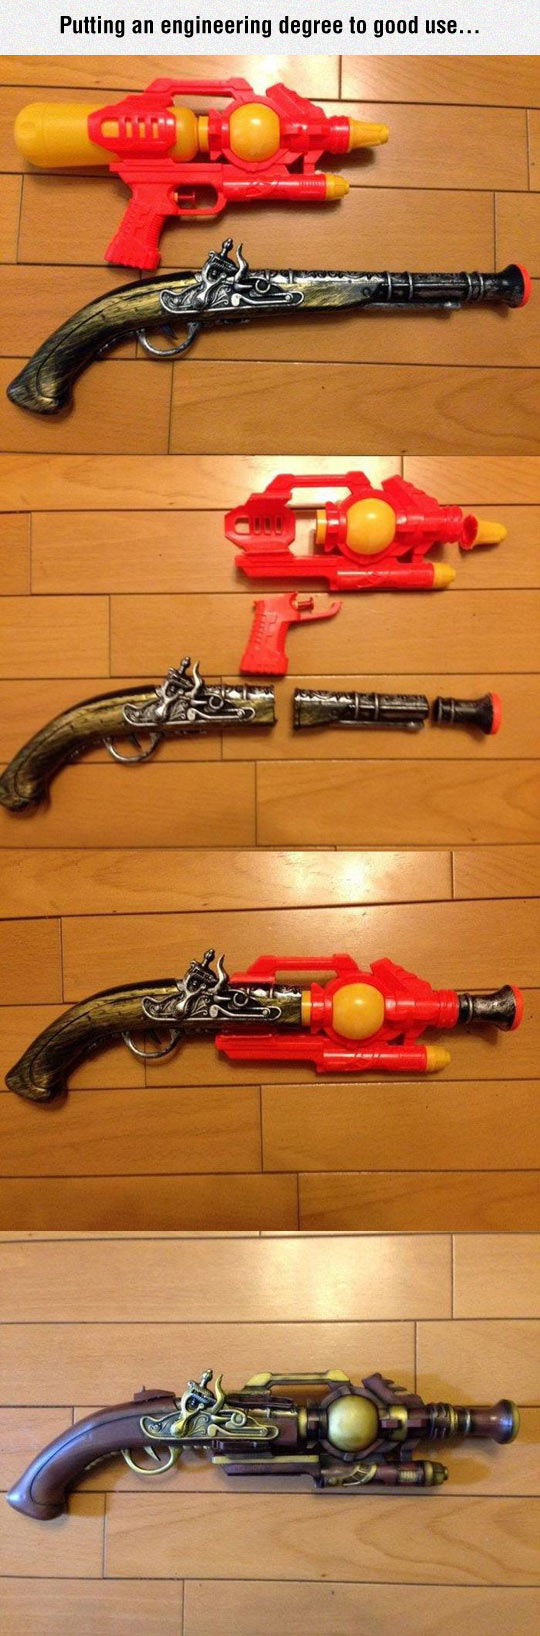 funny-weapon-toy-engineering-steampunk